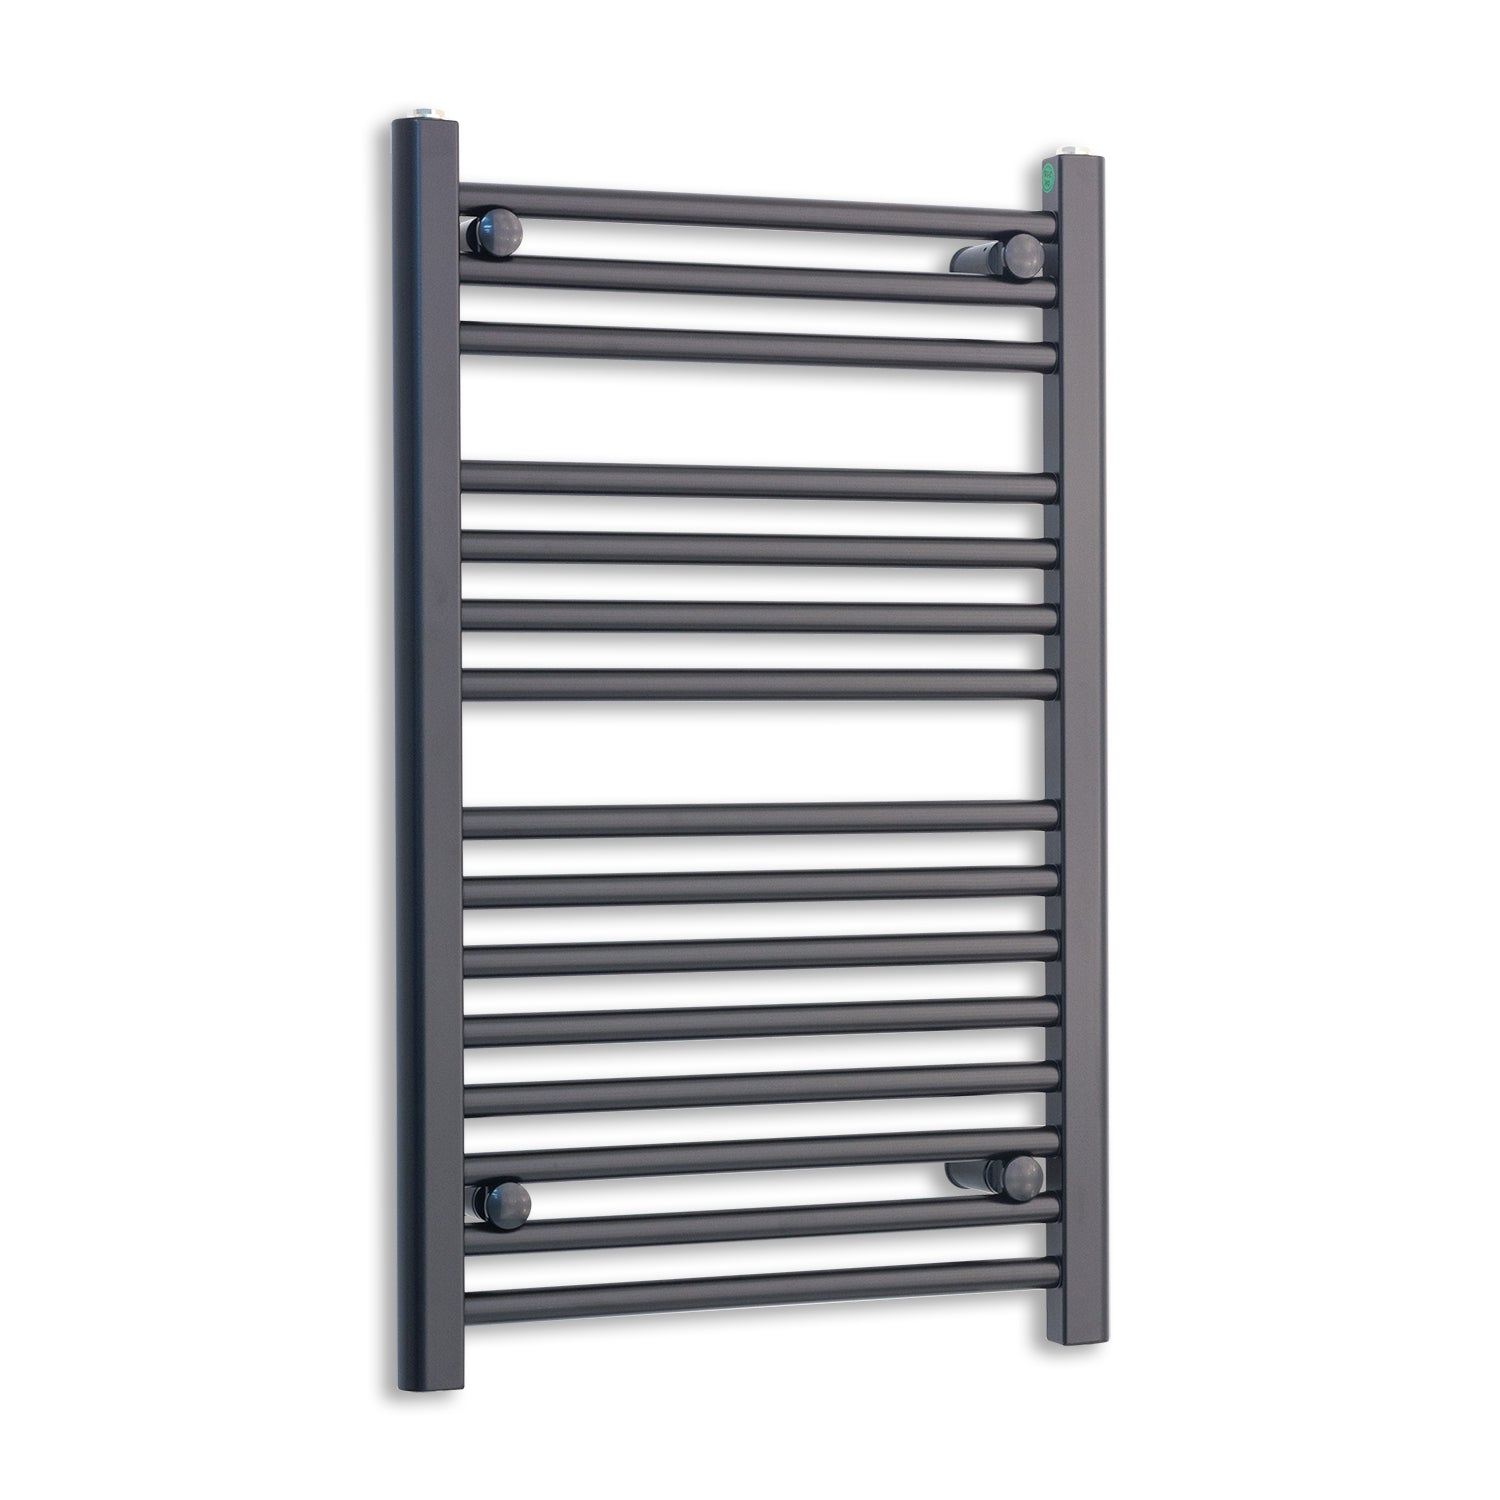 450mm Wide 800mm High Black Towel Rail Radiator